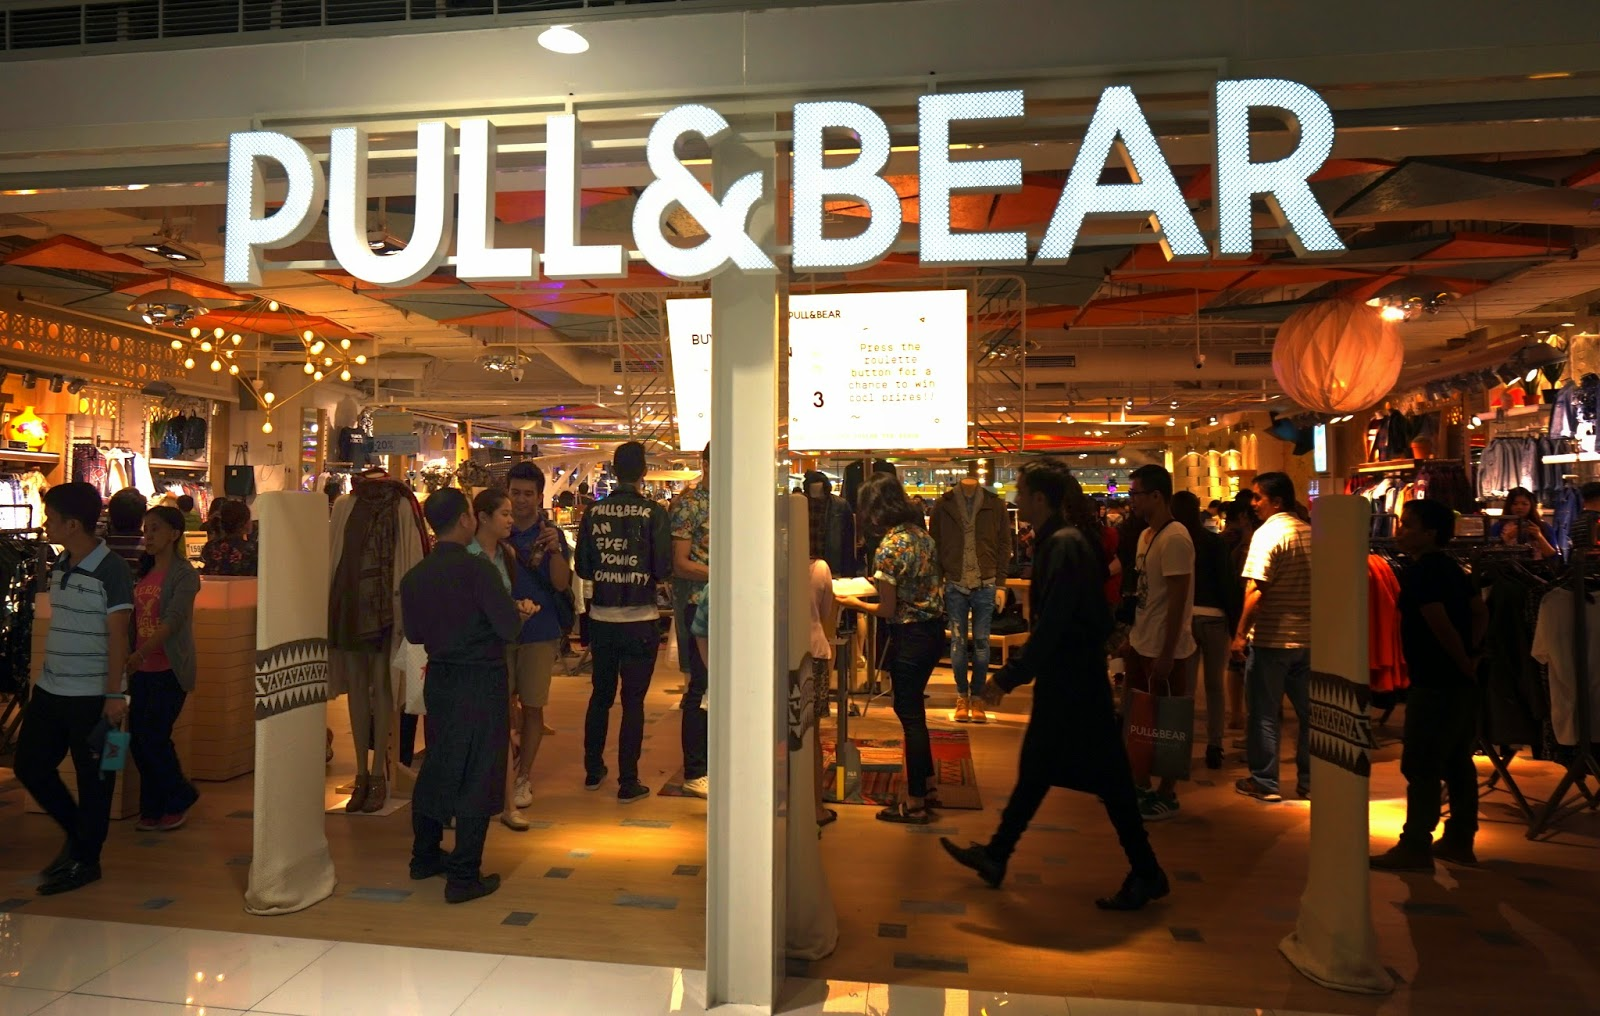 1600 Sf To Sm Pull And Bear Opens In Manila Store Tour My Favorite